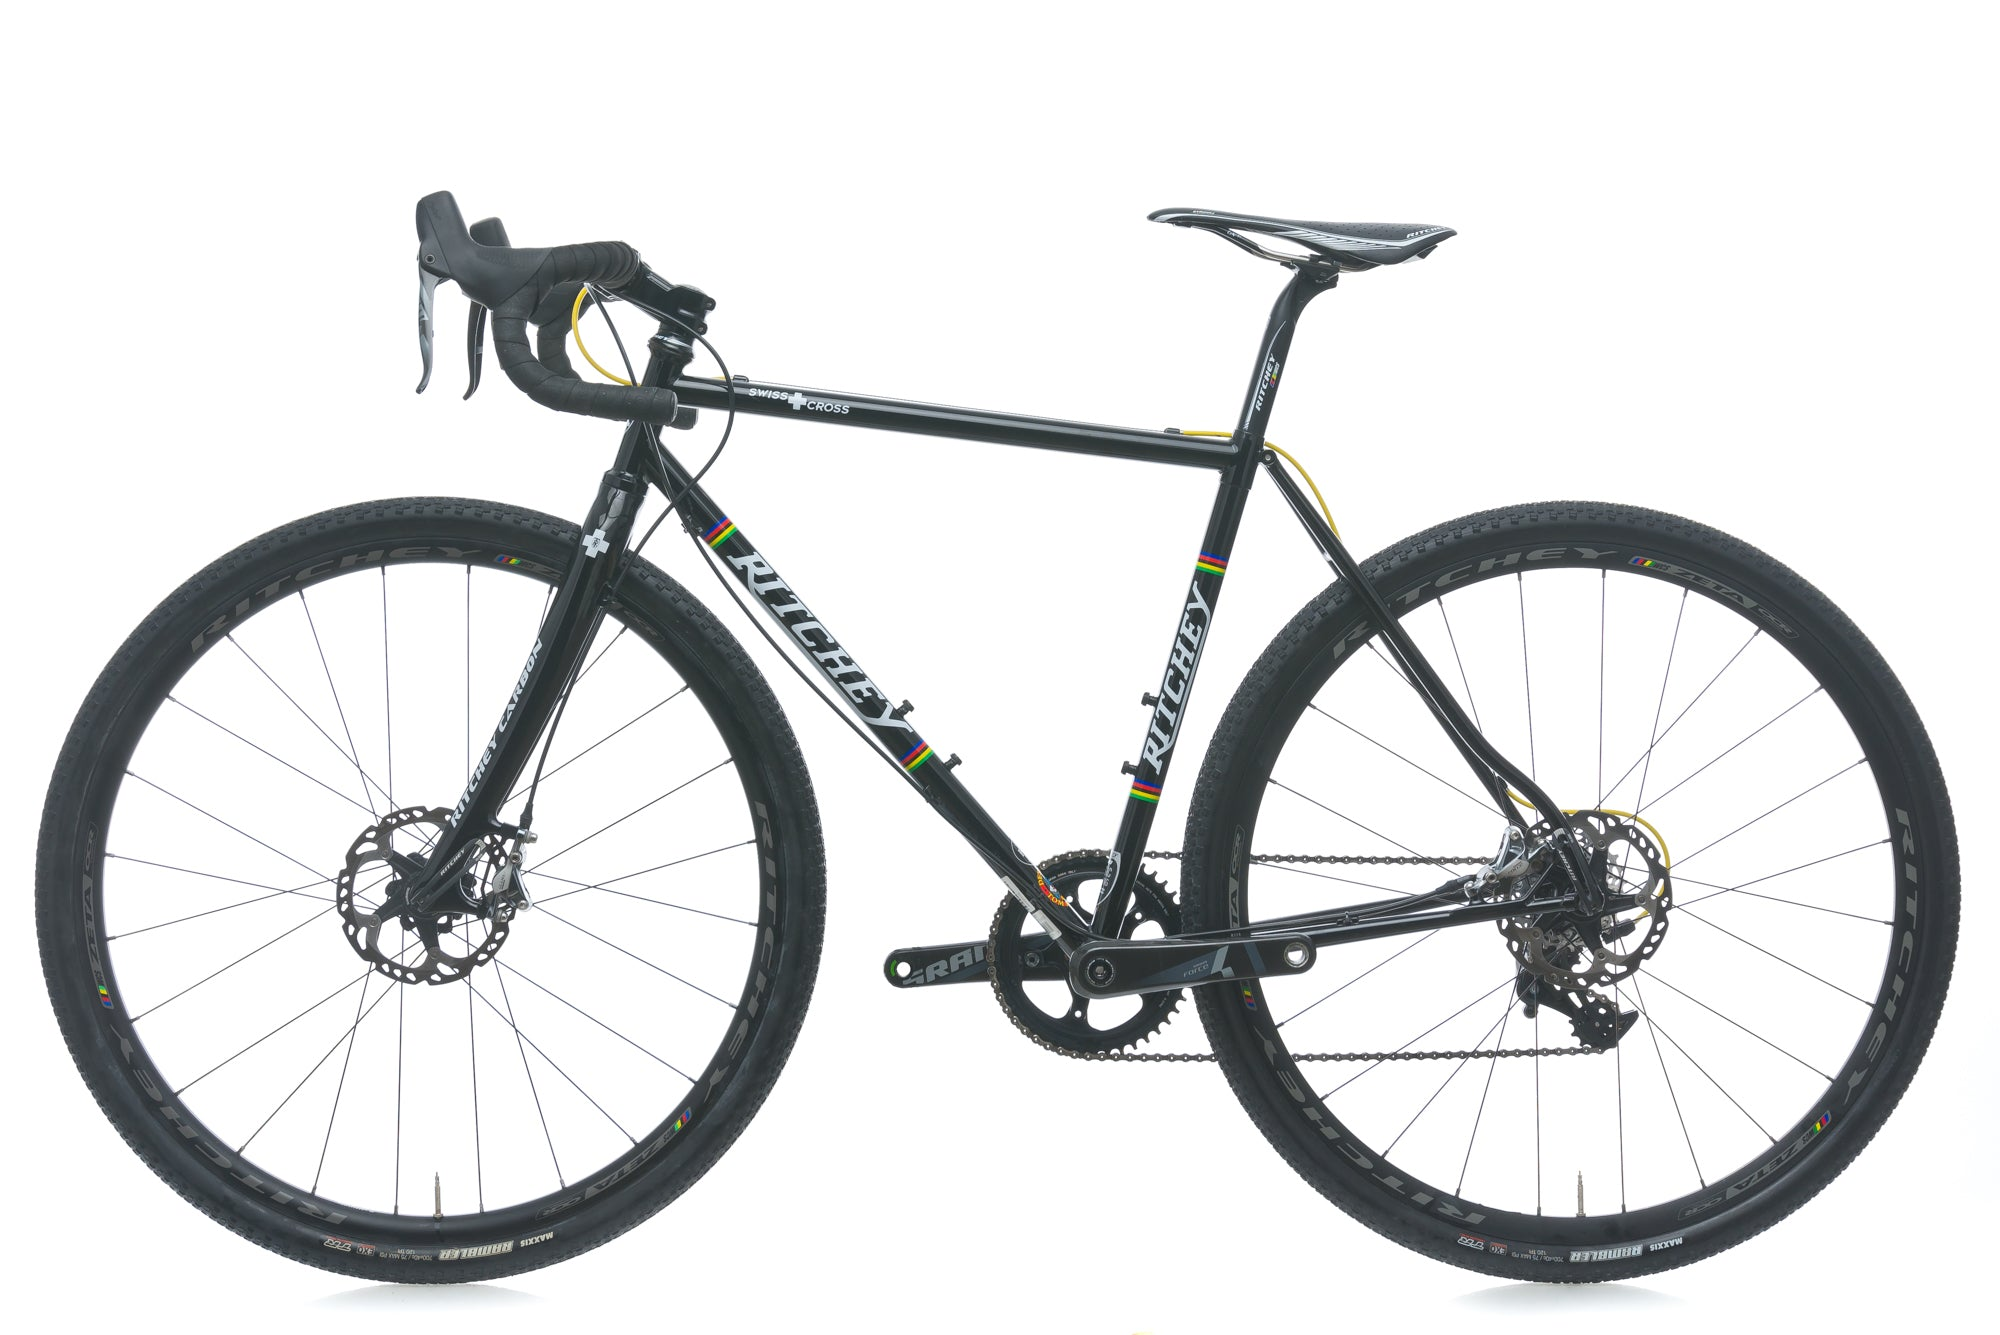 Ritchey Swiss Cross Disc 53cm Bike - 2016 non-drive side